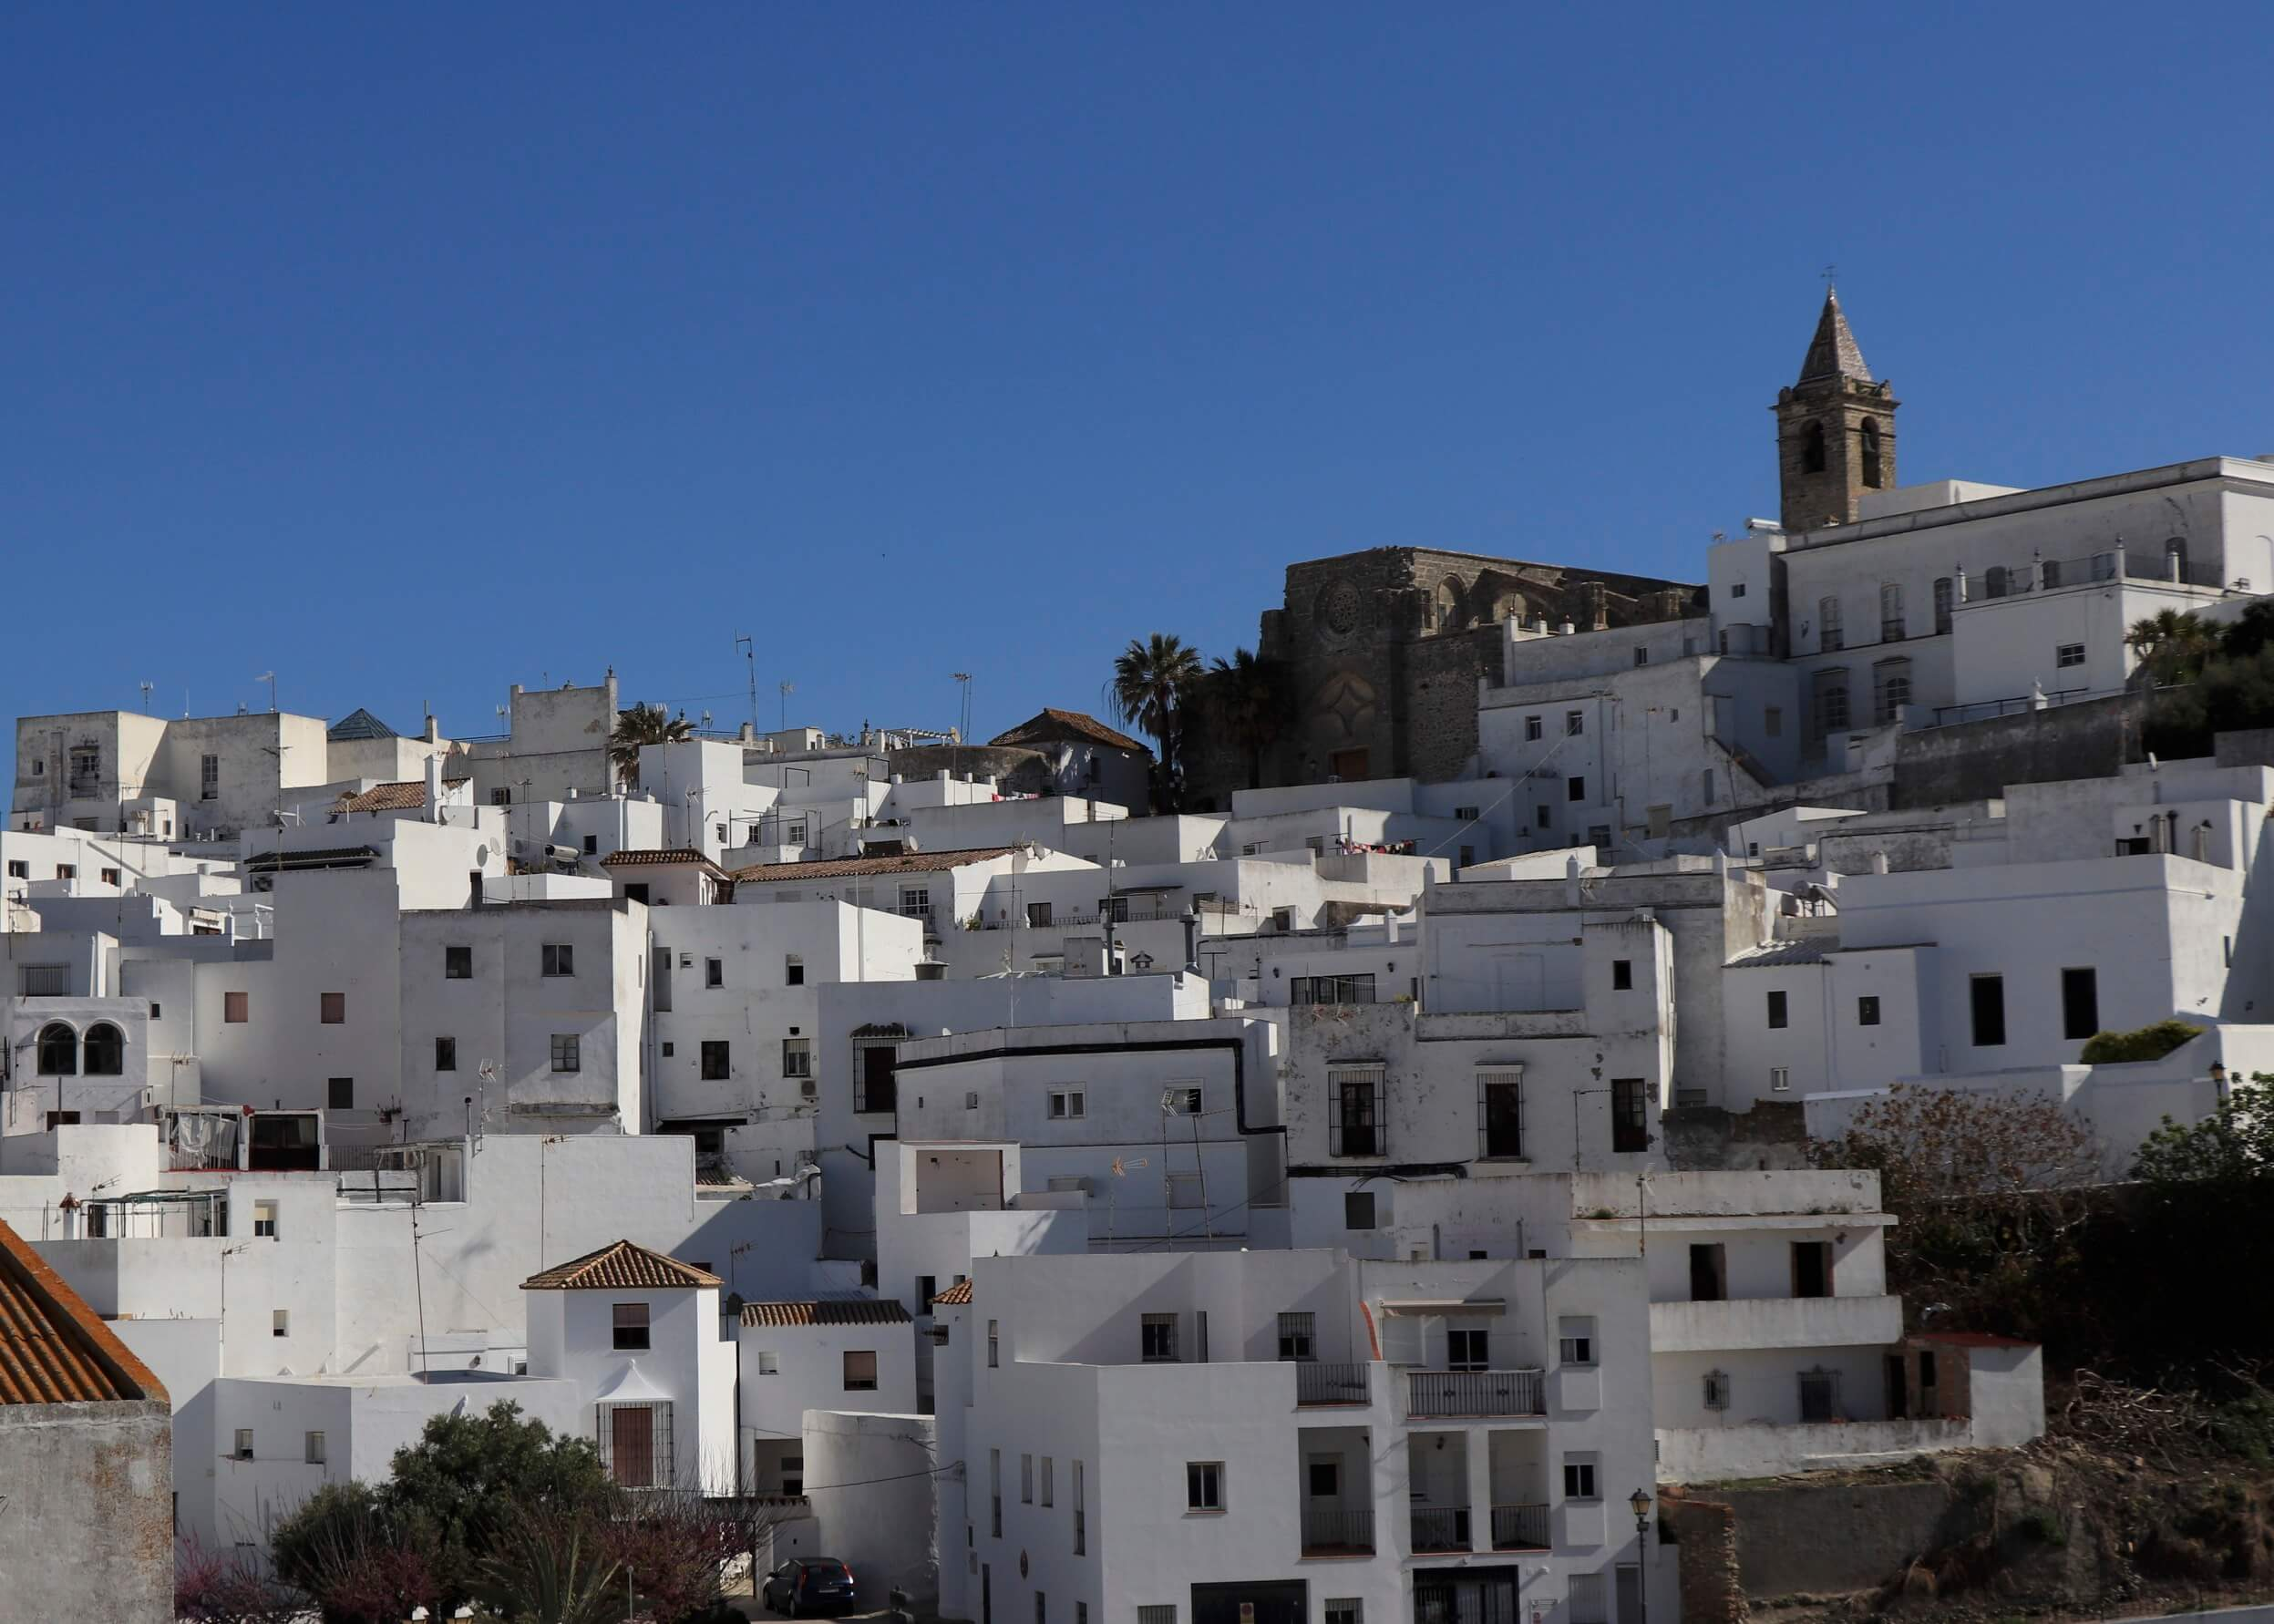 Views of Vejer from Dos Miralles